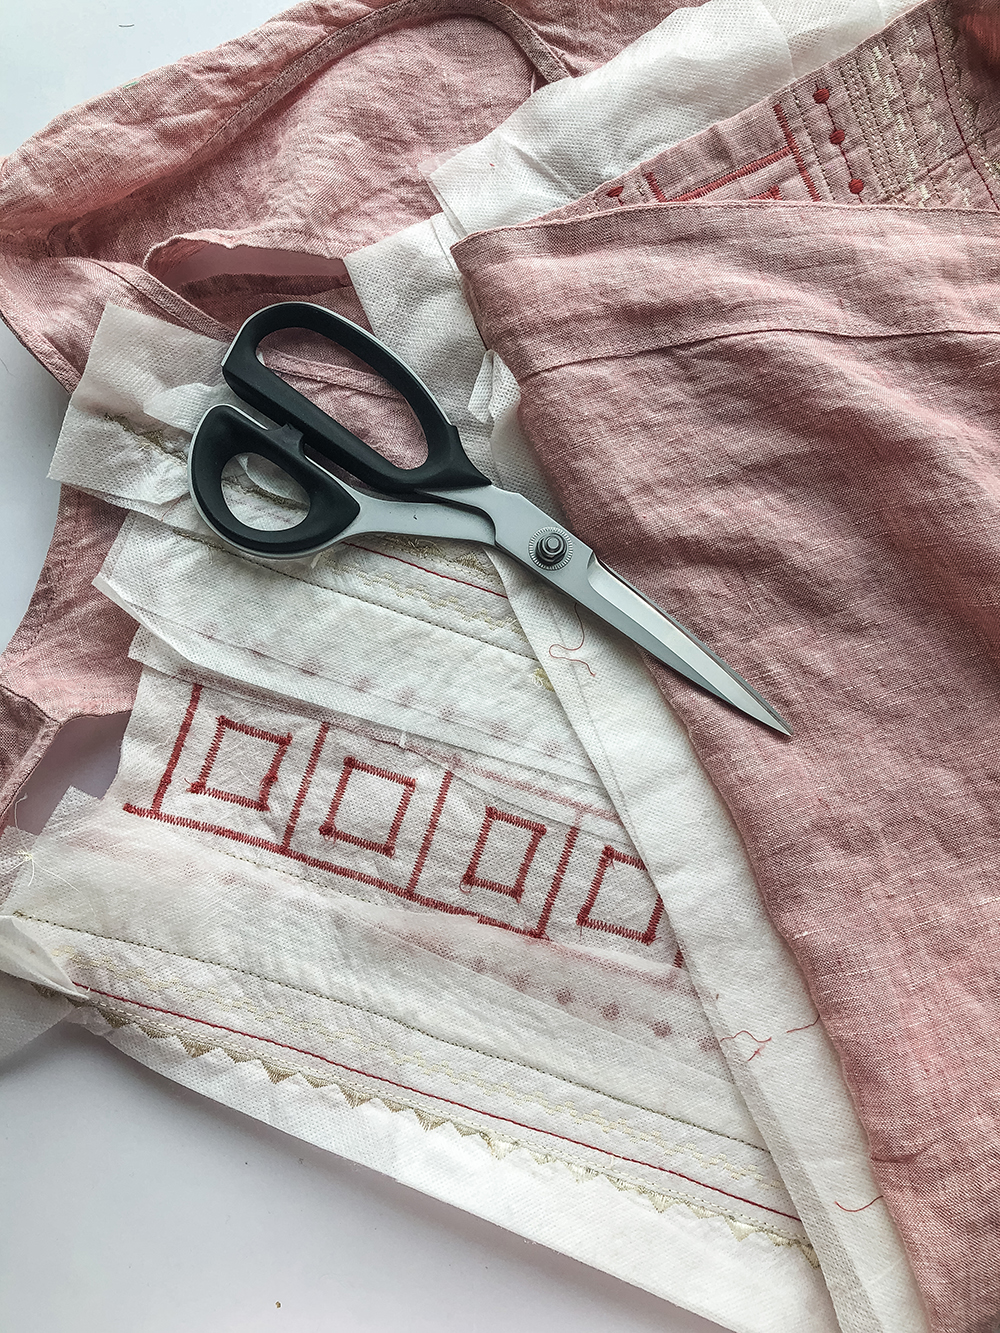 Spruce up your wardrobe by learning how to add decorative stitches to clothes! In this step by step tutorial, you'll learn the best locations on garments for decorative stitches, how to prep your garments for embellishment, and more tips for quilters who want to get the most out of their sewing machine stitches. suzyquilts.com #quilting #sewingdiy